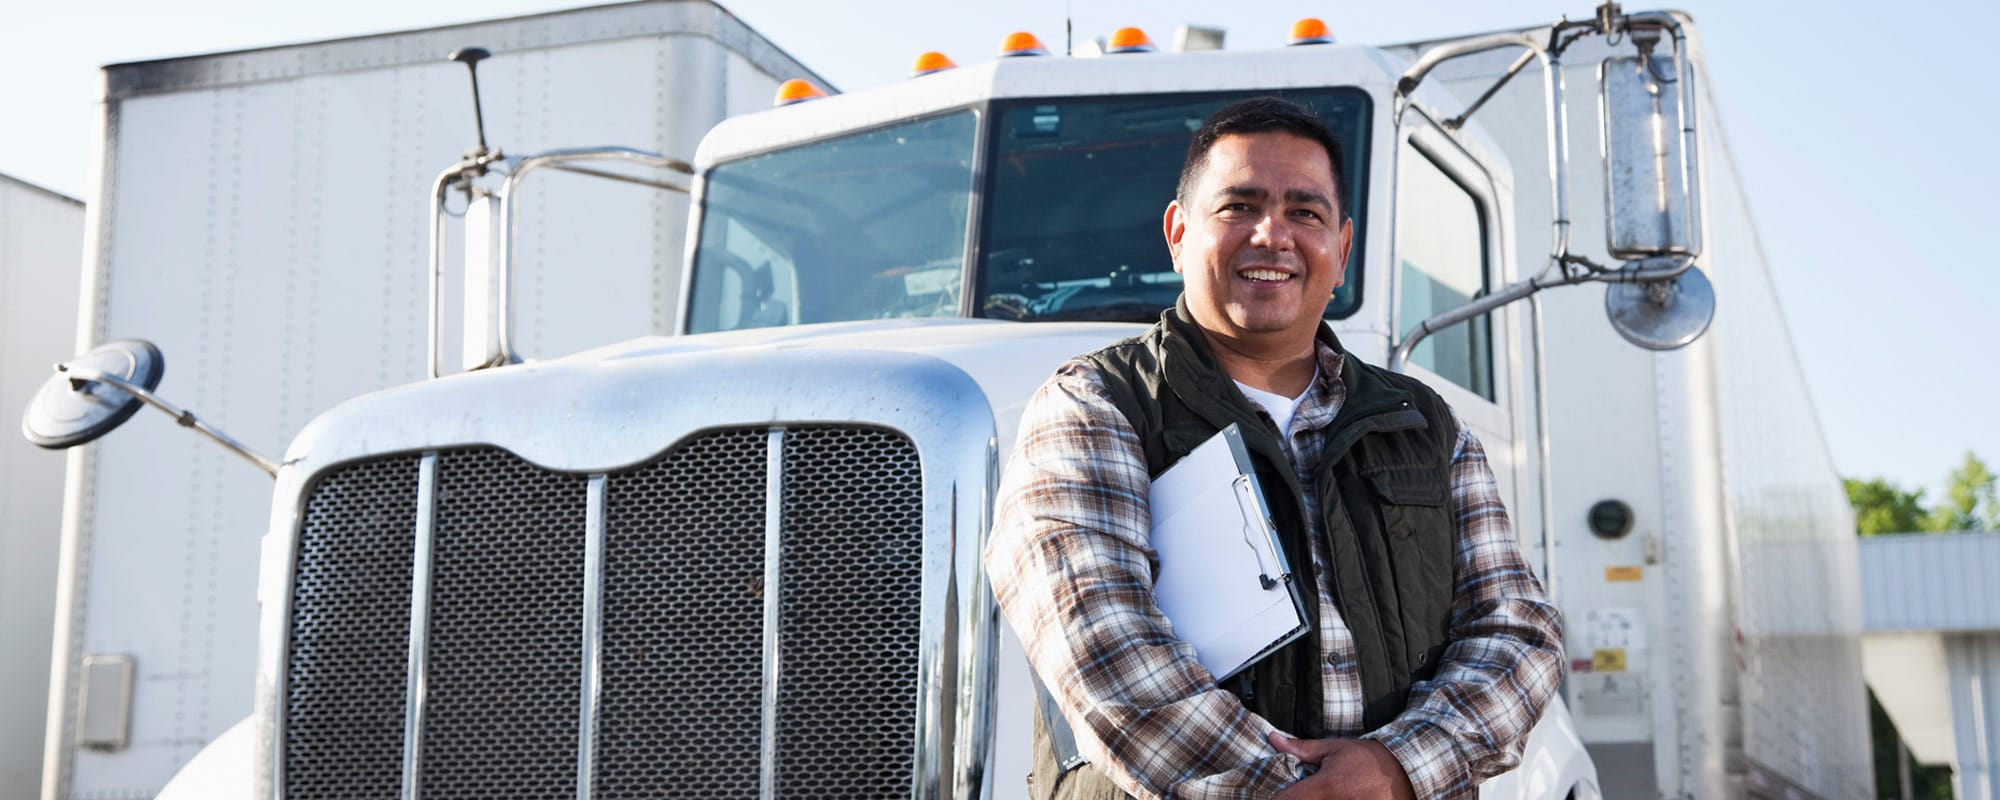 Image of smiling man standing in front of his tractor-trailer